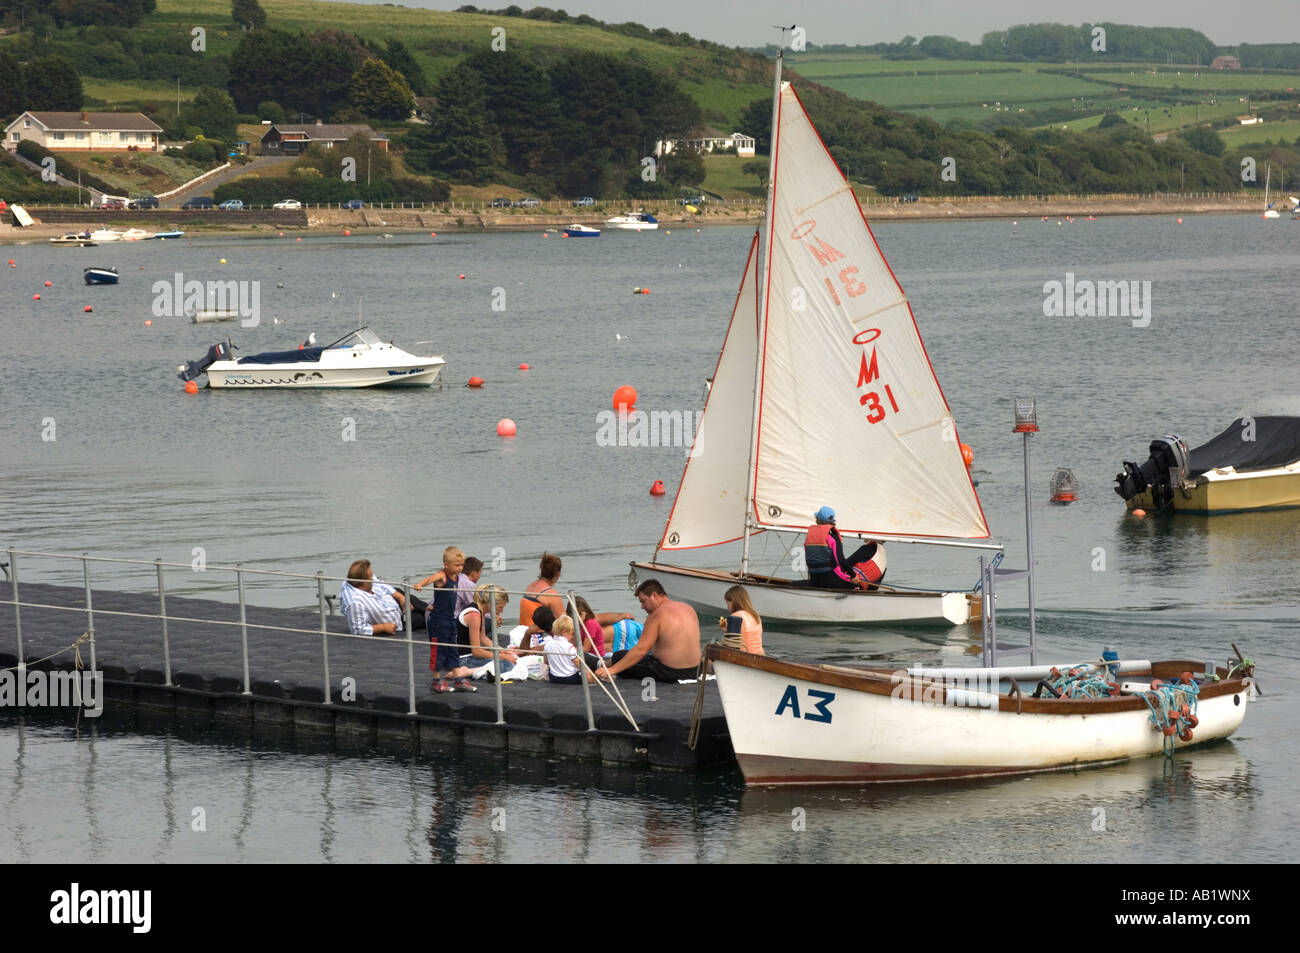 Dinghy Yachting at Gwbert on Teifi Estuary 3 miles down river from Cardigan west wales UK - Stock Image